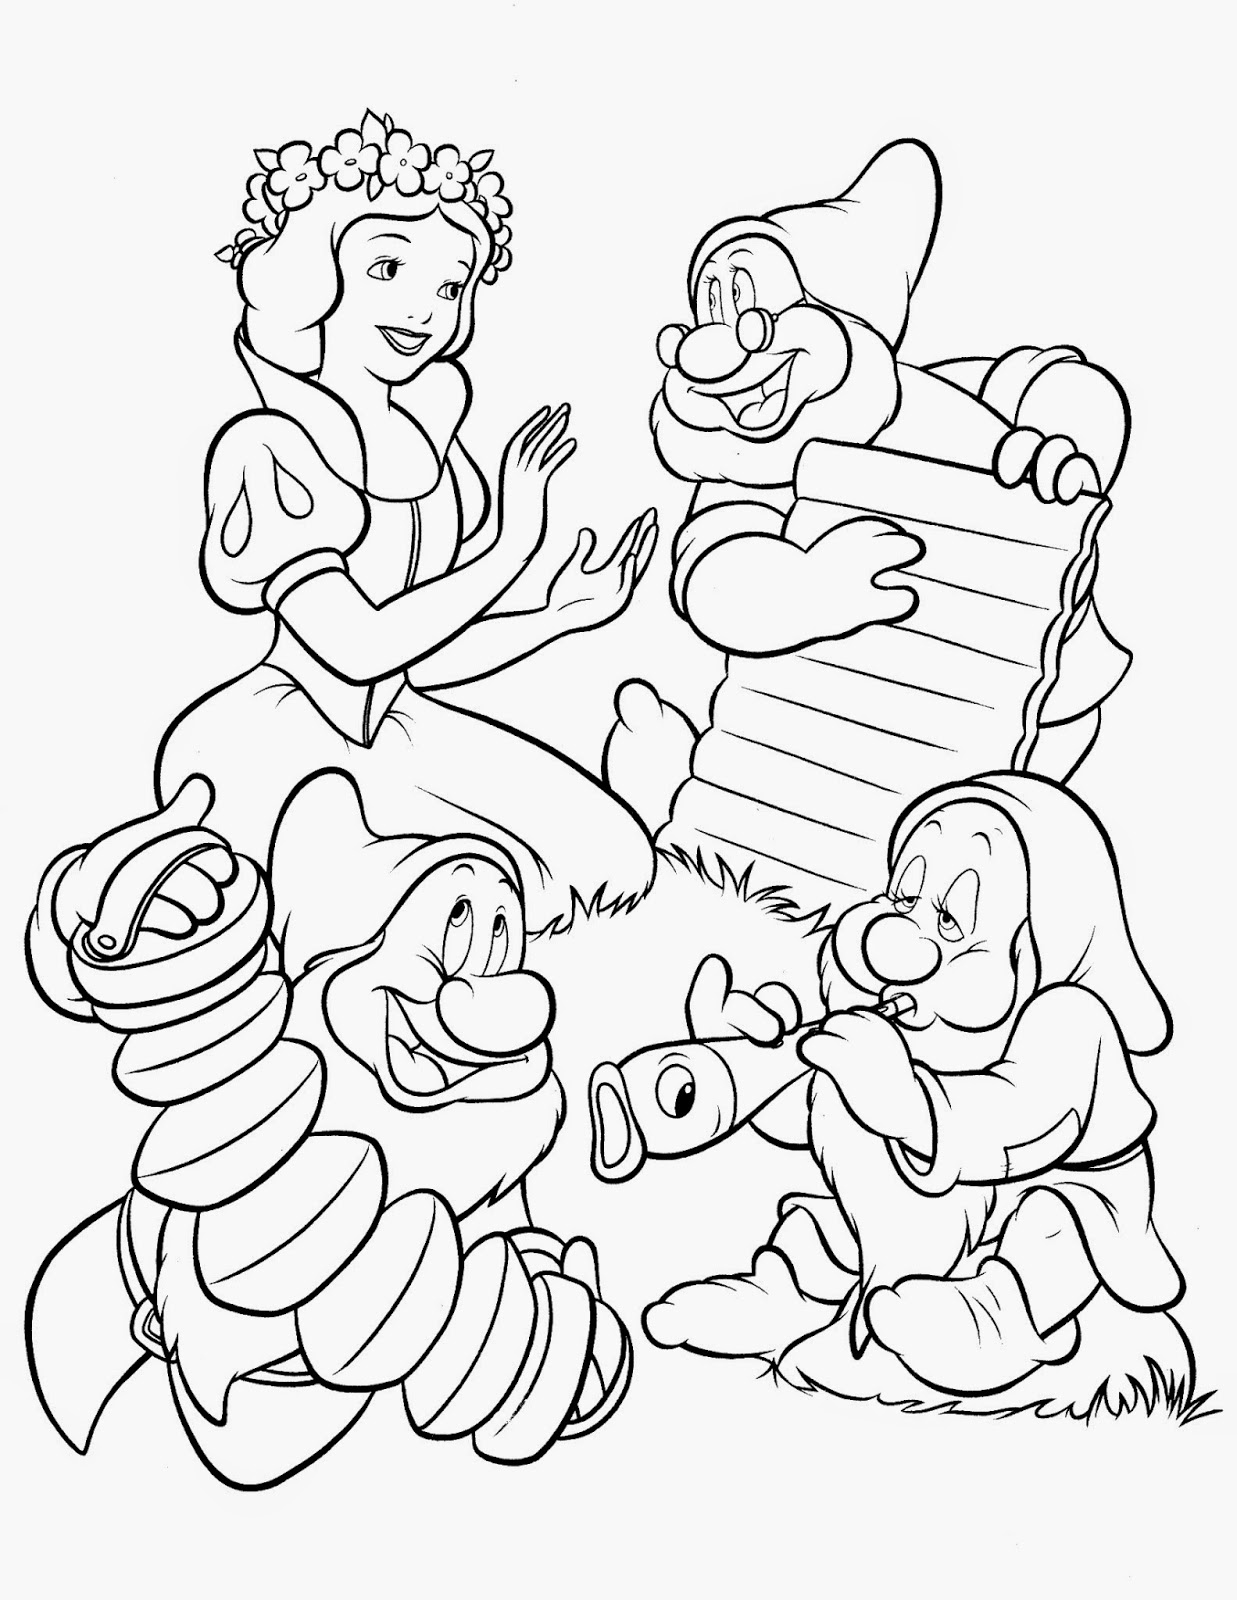 snowwhite coloring disney snow white coloring pages thousand of the best snowwhite coloring